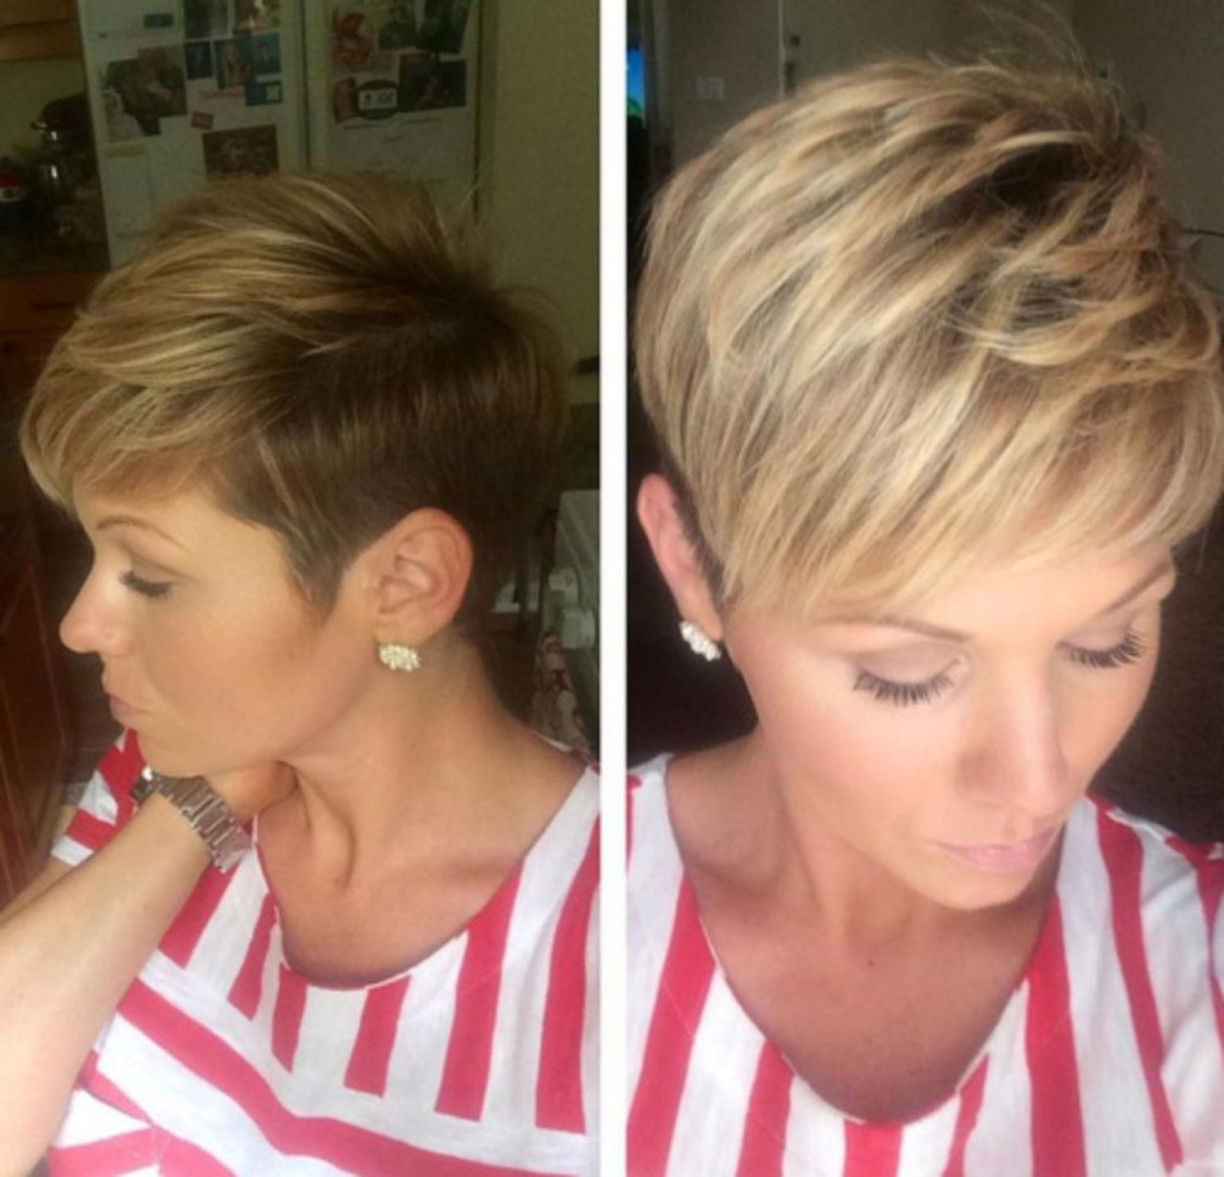 2017 Feathered Pixie Shag Haircuts With Highlights With Pin On Hair (View 3 of 20)